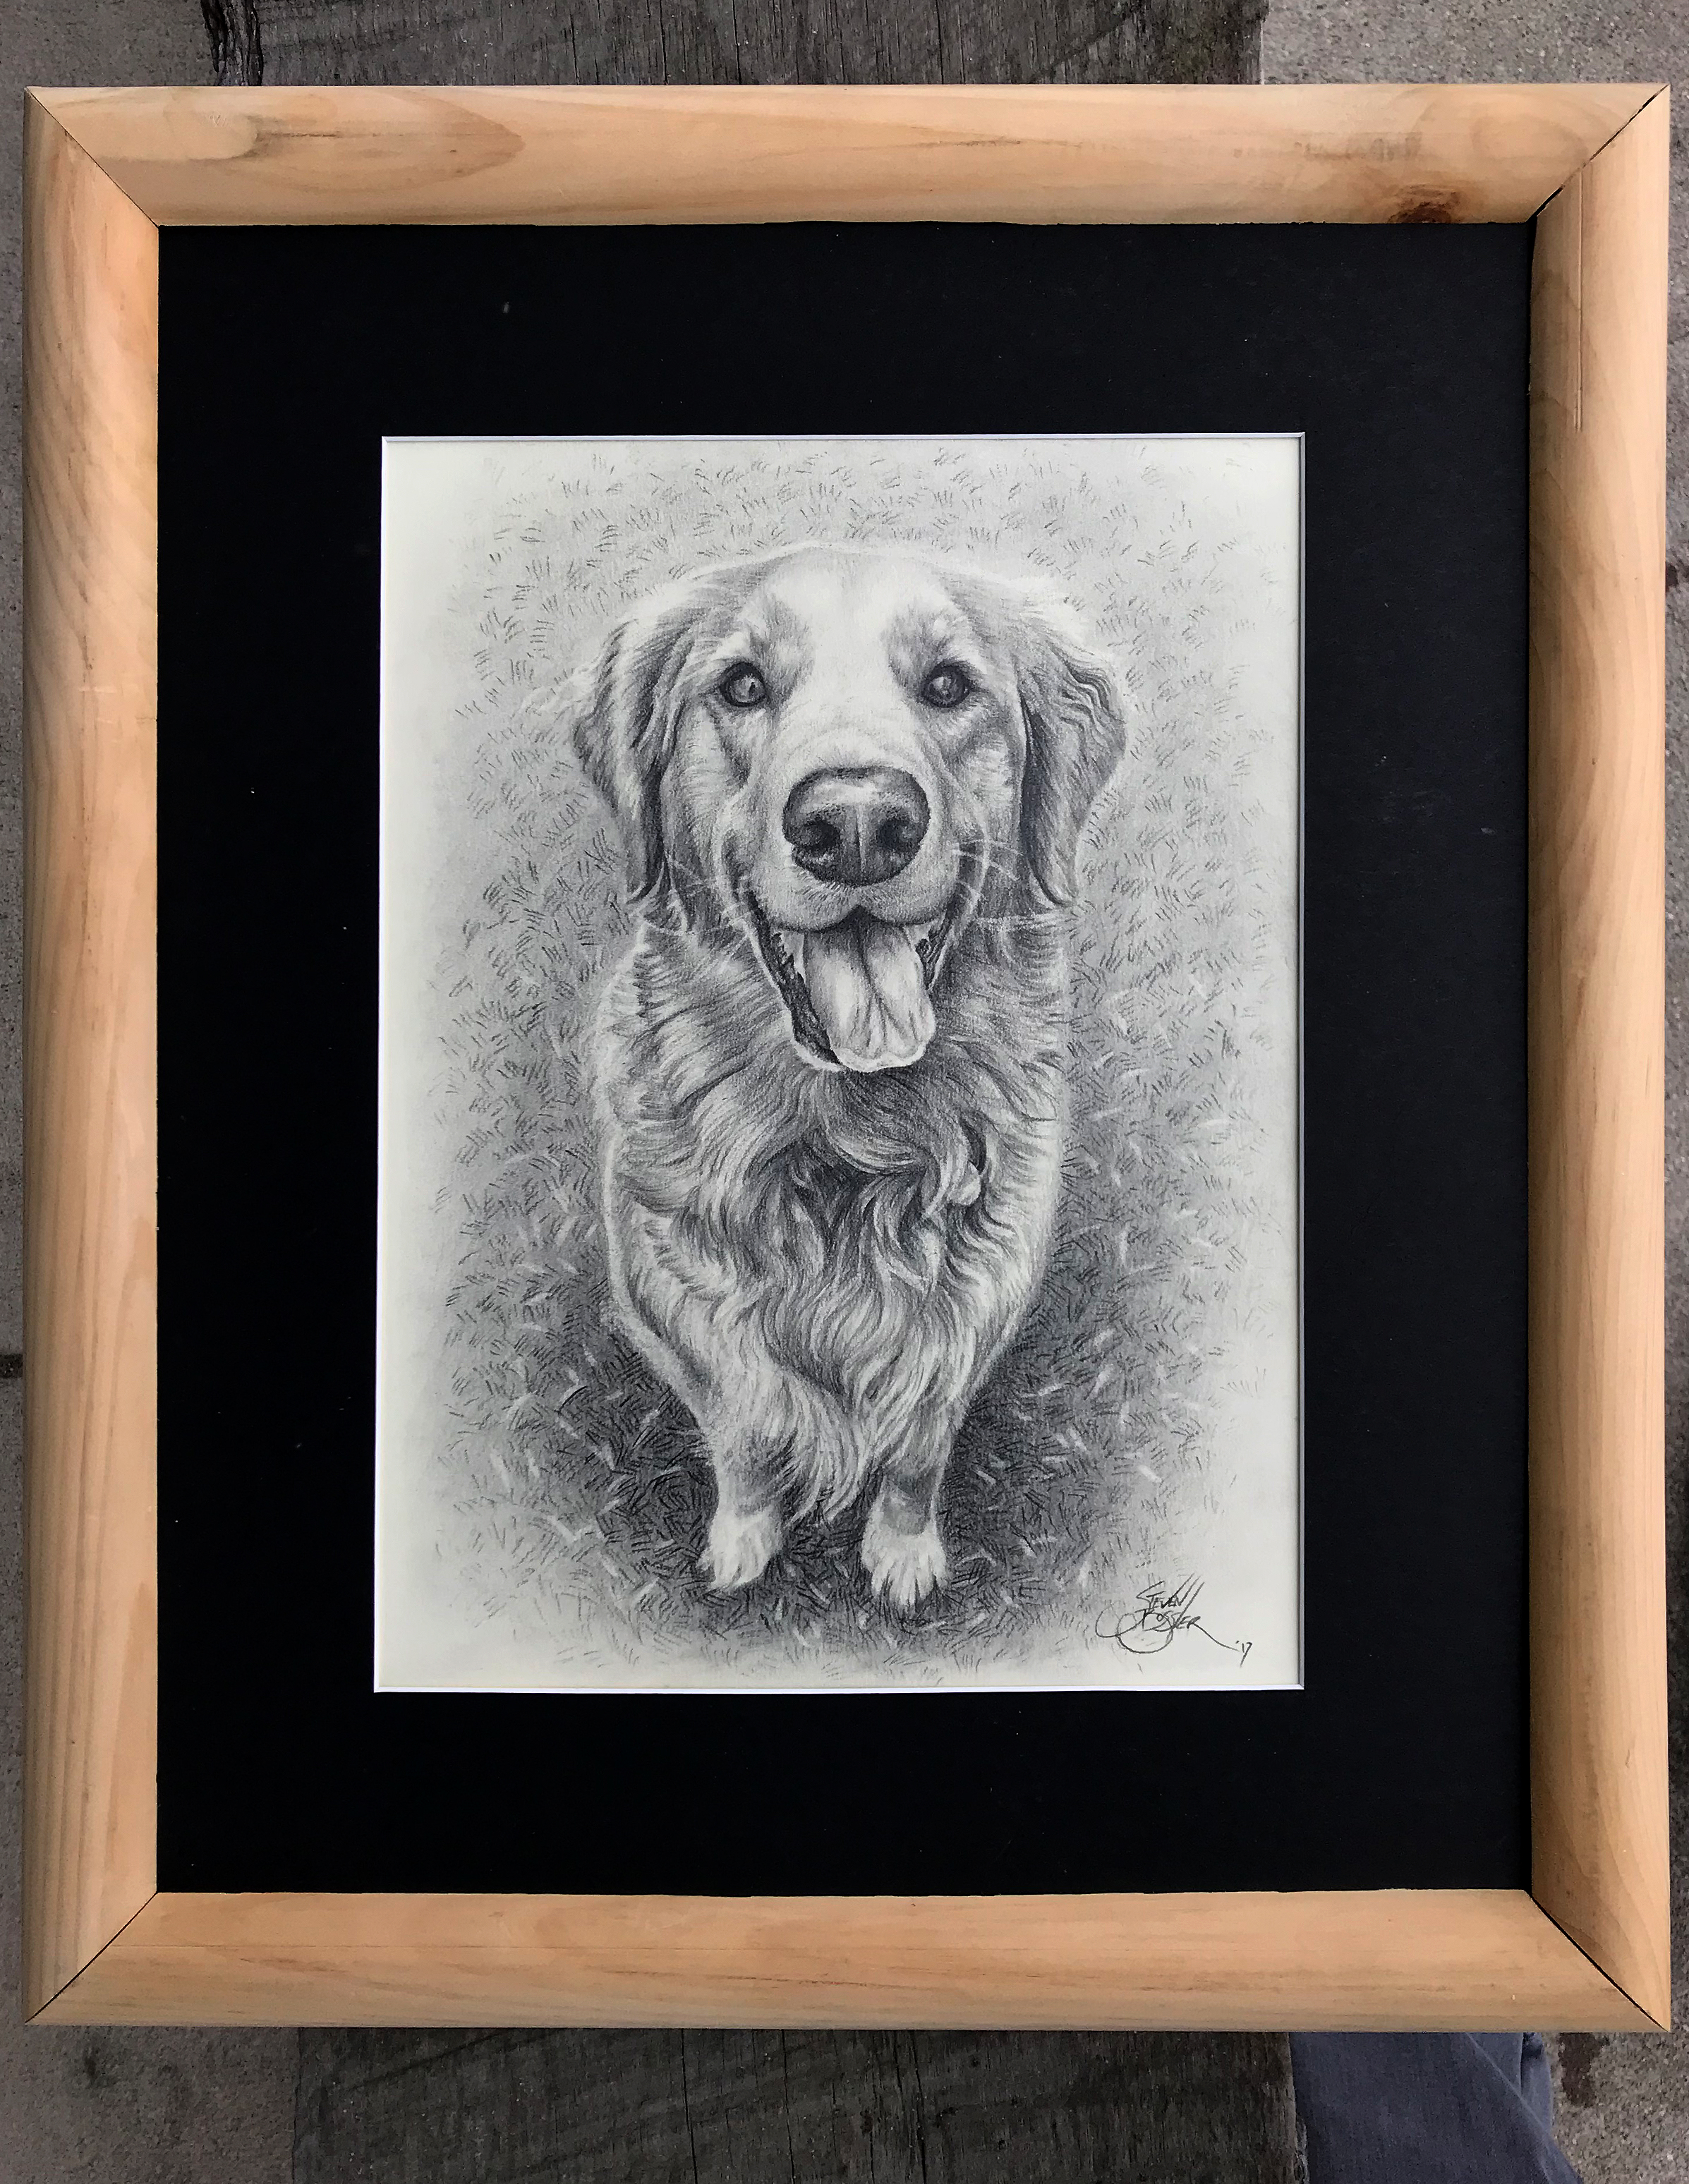 Another commissioned dog drawing. There will be few more of these on the way.